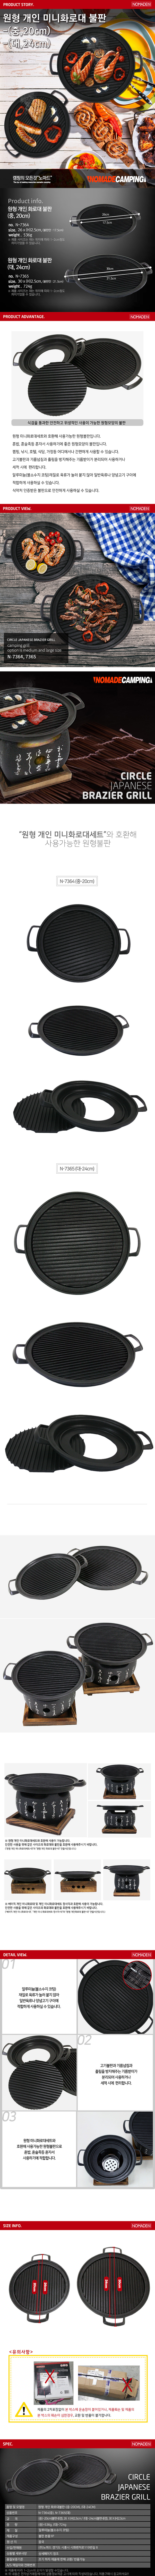 nomade21_circle_individual_brazier_hot_grill.jpg